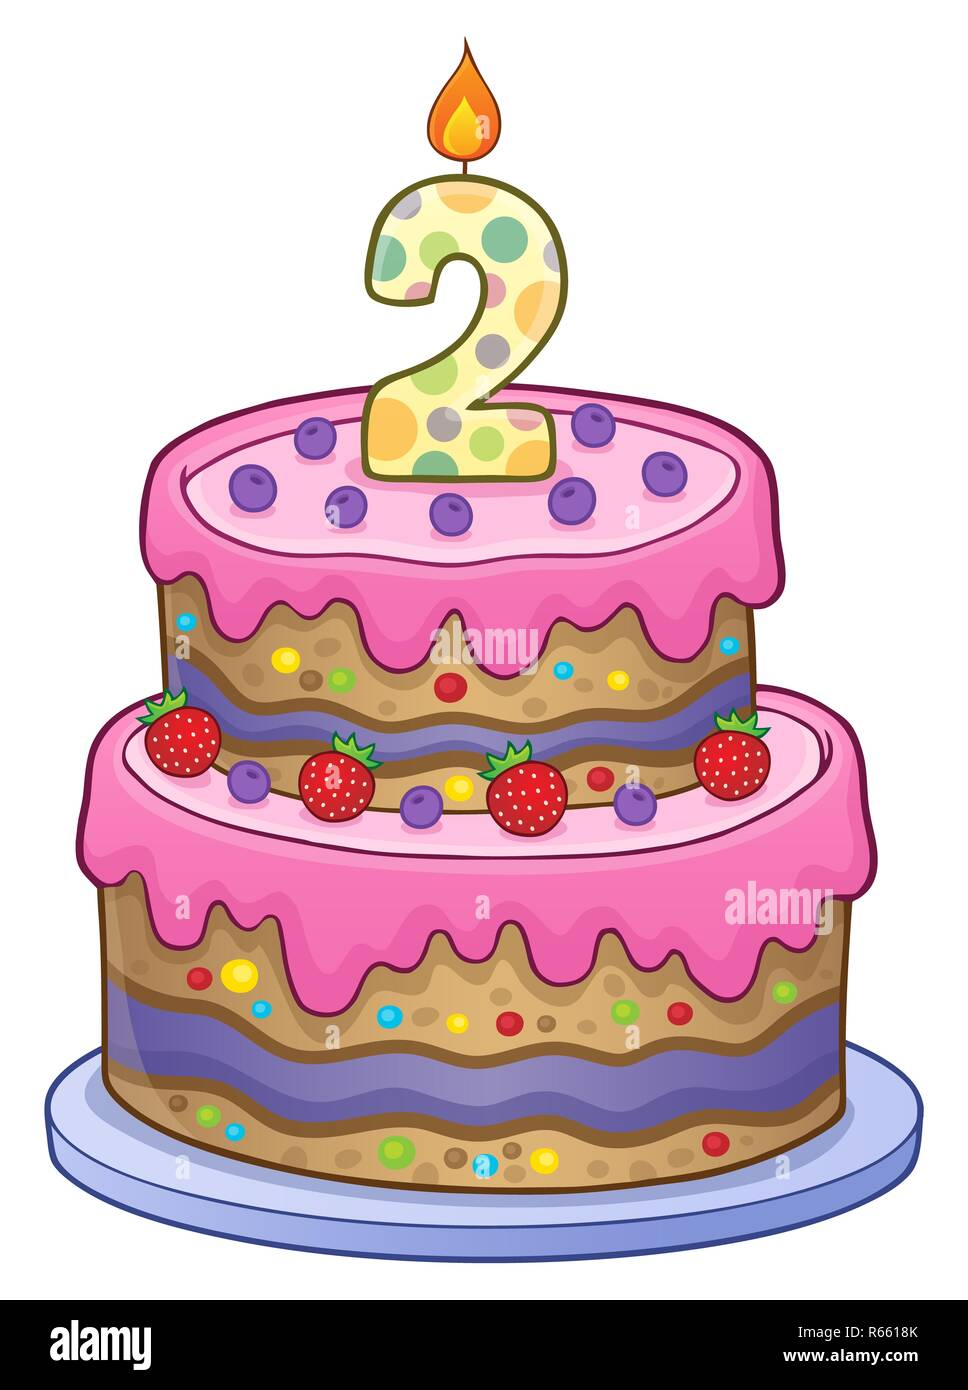 Peachy Birthday Cake Image For 2 Years Old Stock Photo 227555459 Alamy Funny Birthday Cards Online Elaedamsfinfo